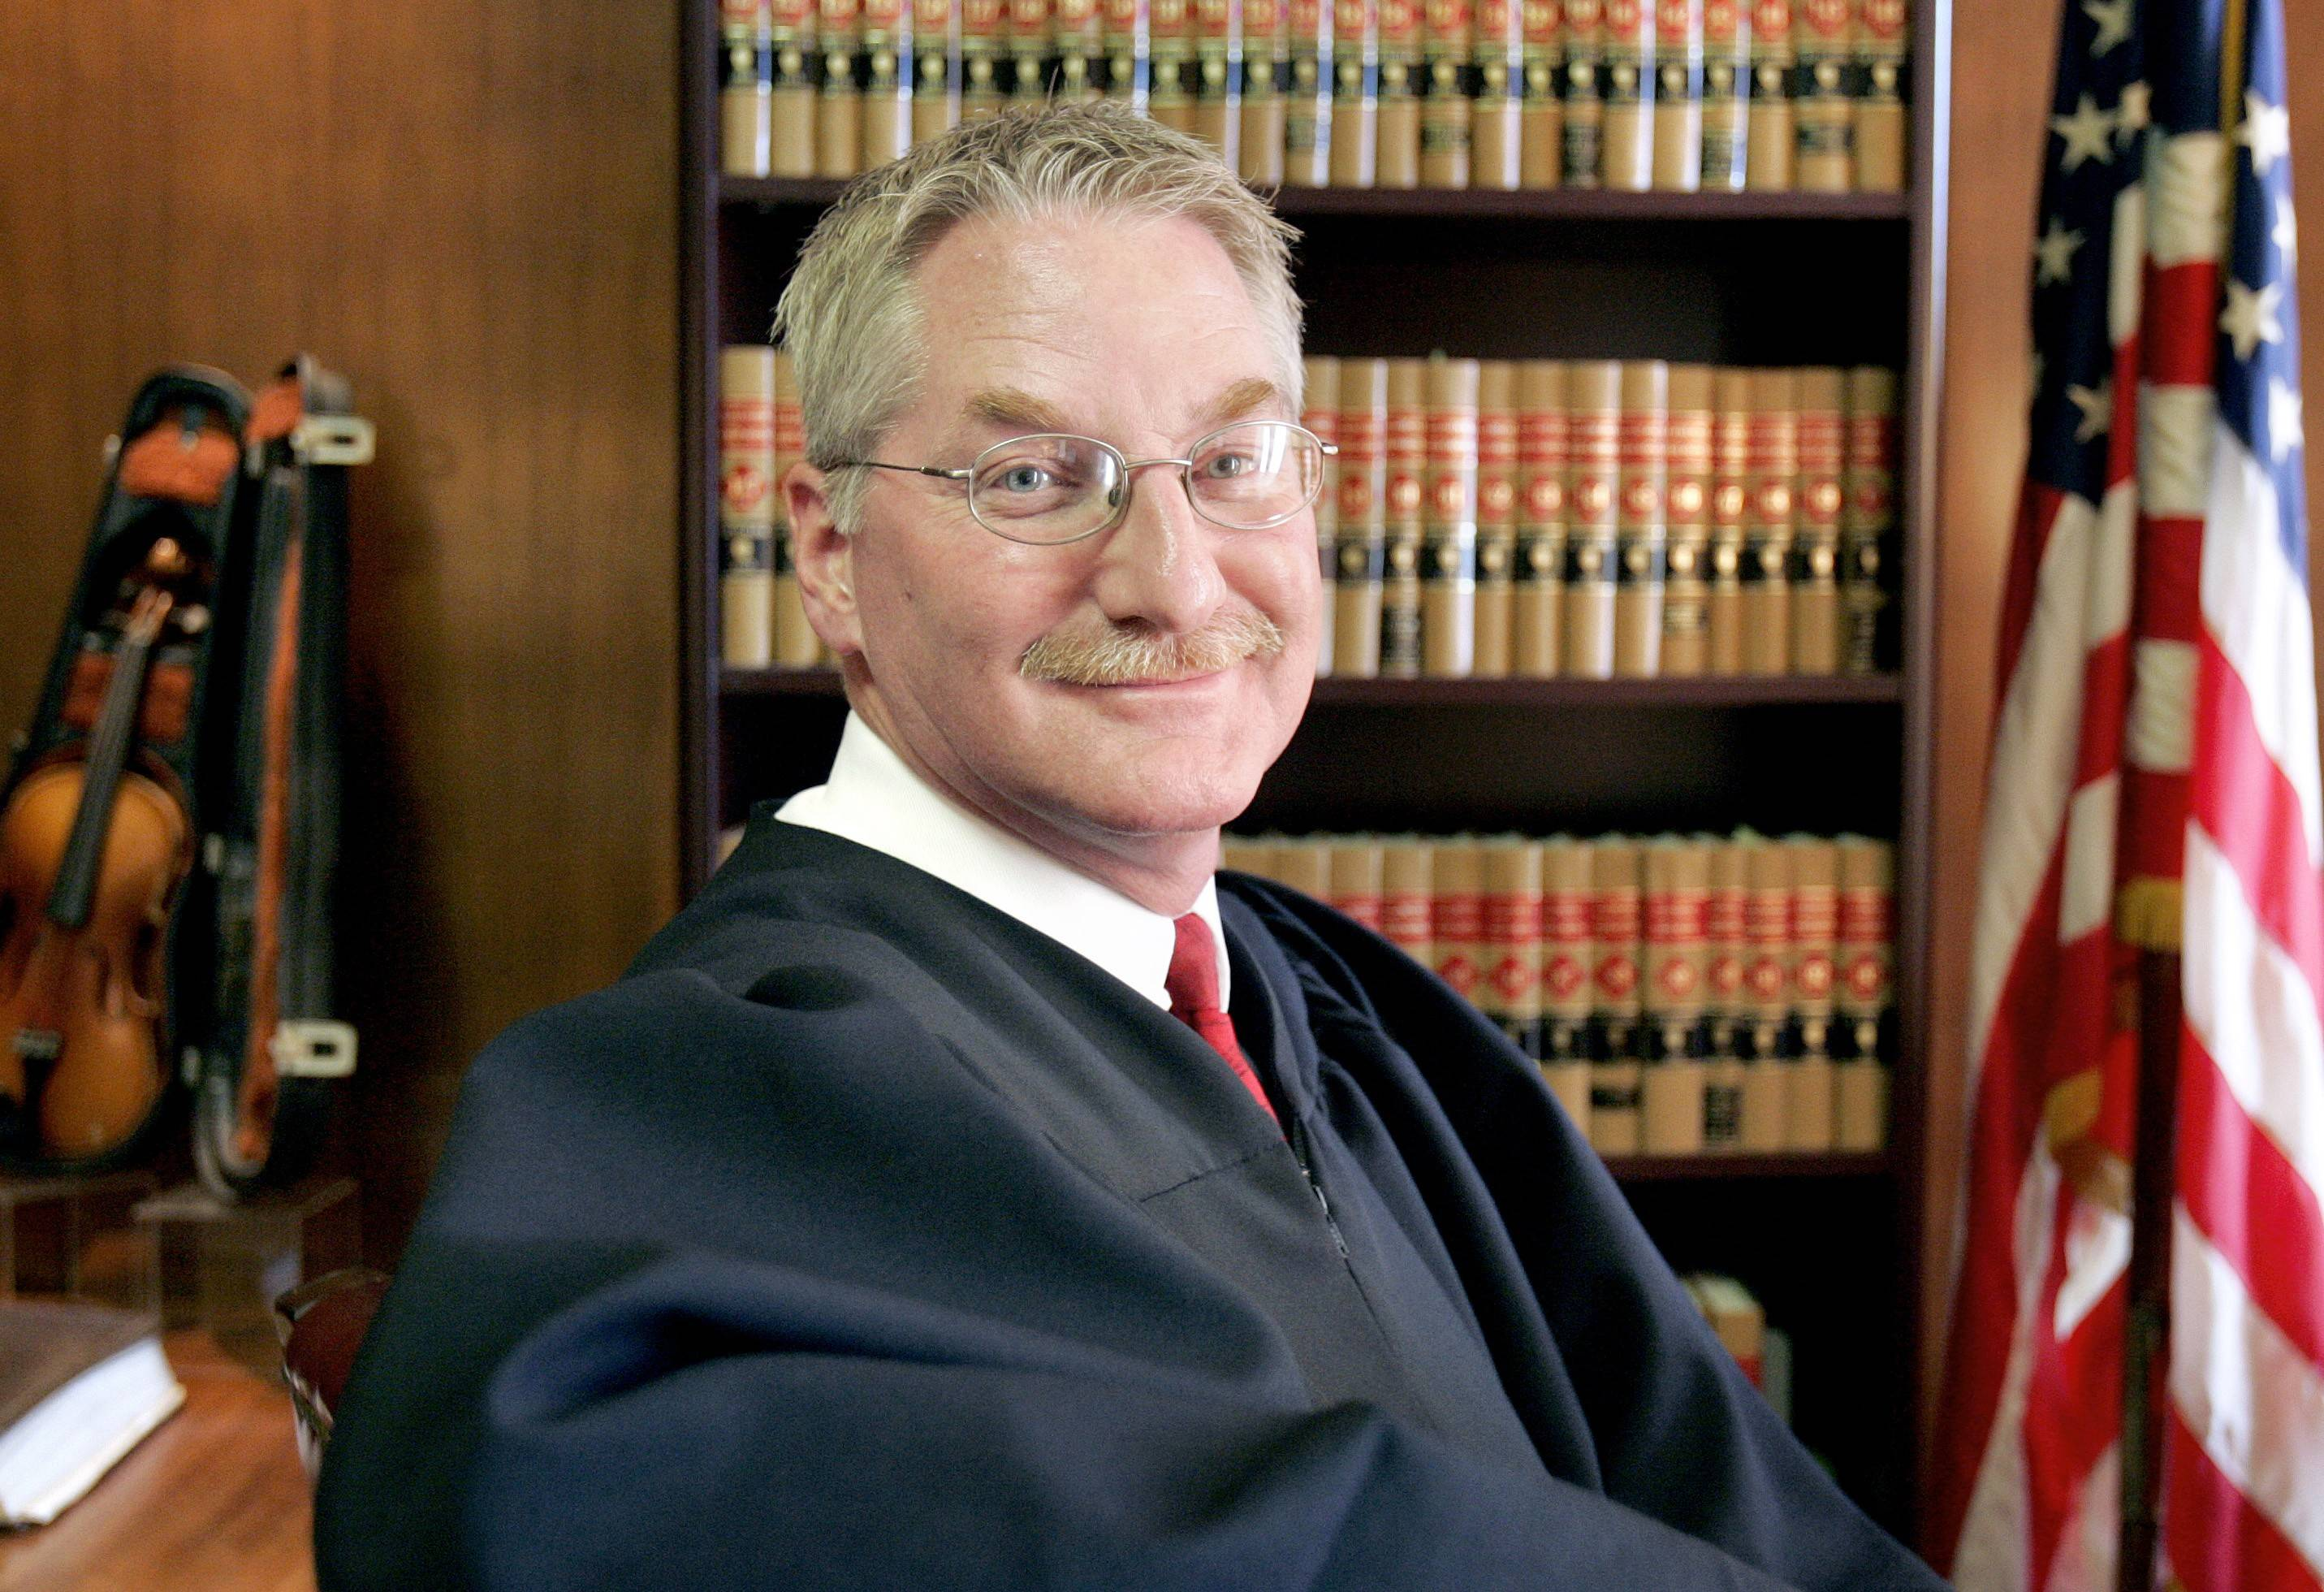 Former Lake County Chief Judge David Hall, 61, died Tuesday